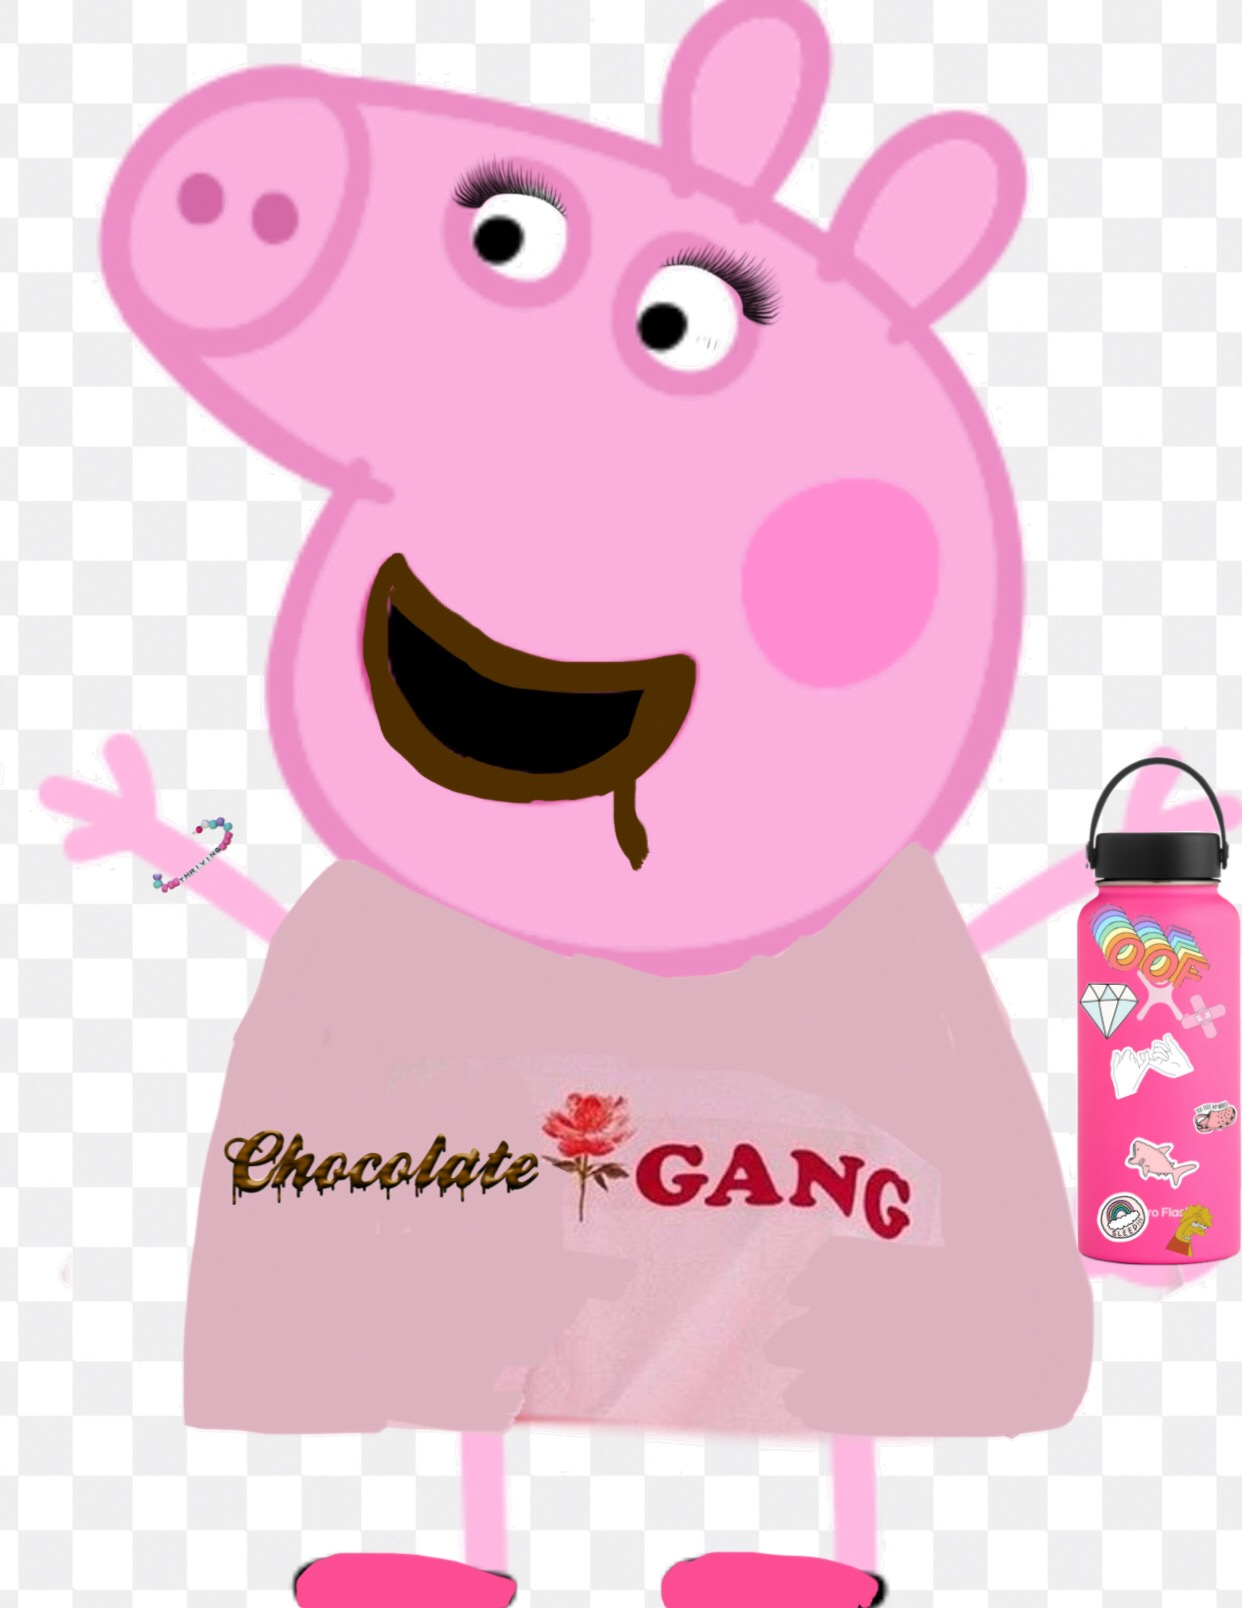 Peppa What Are You Doing In My Chocolate : peppa, doing, chocolate, Chocolate, Peppa, Image, Isabella